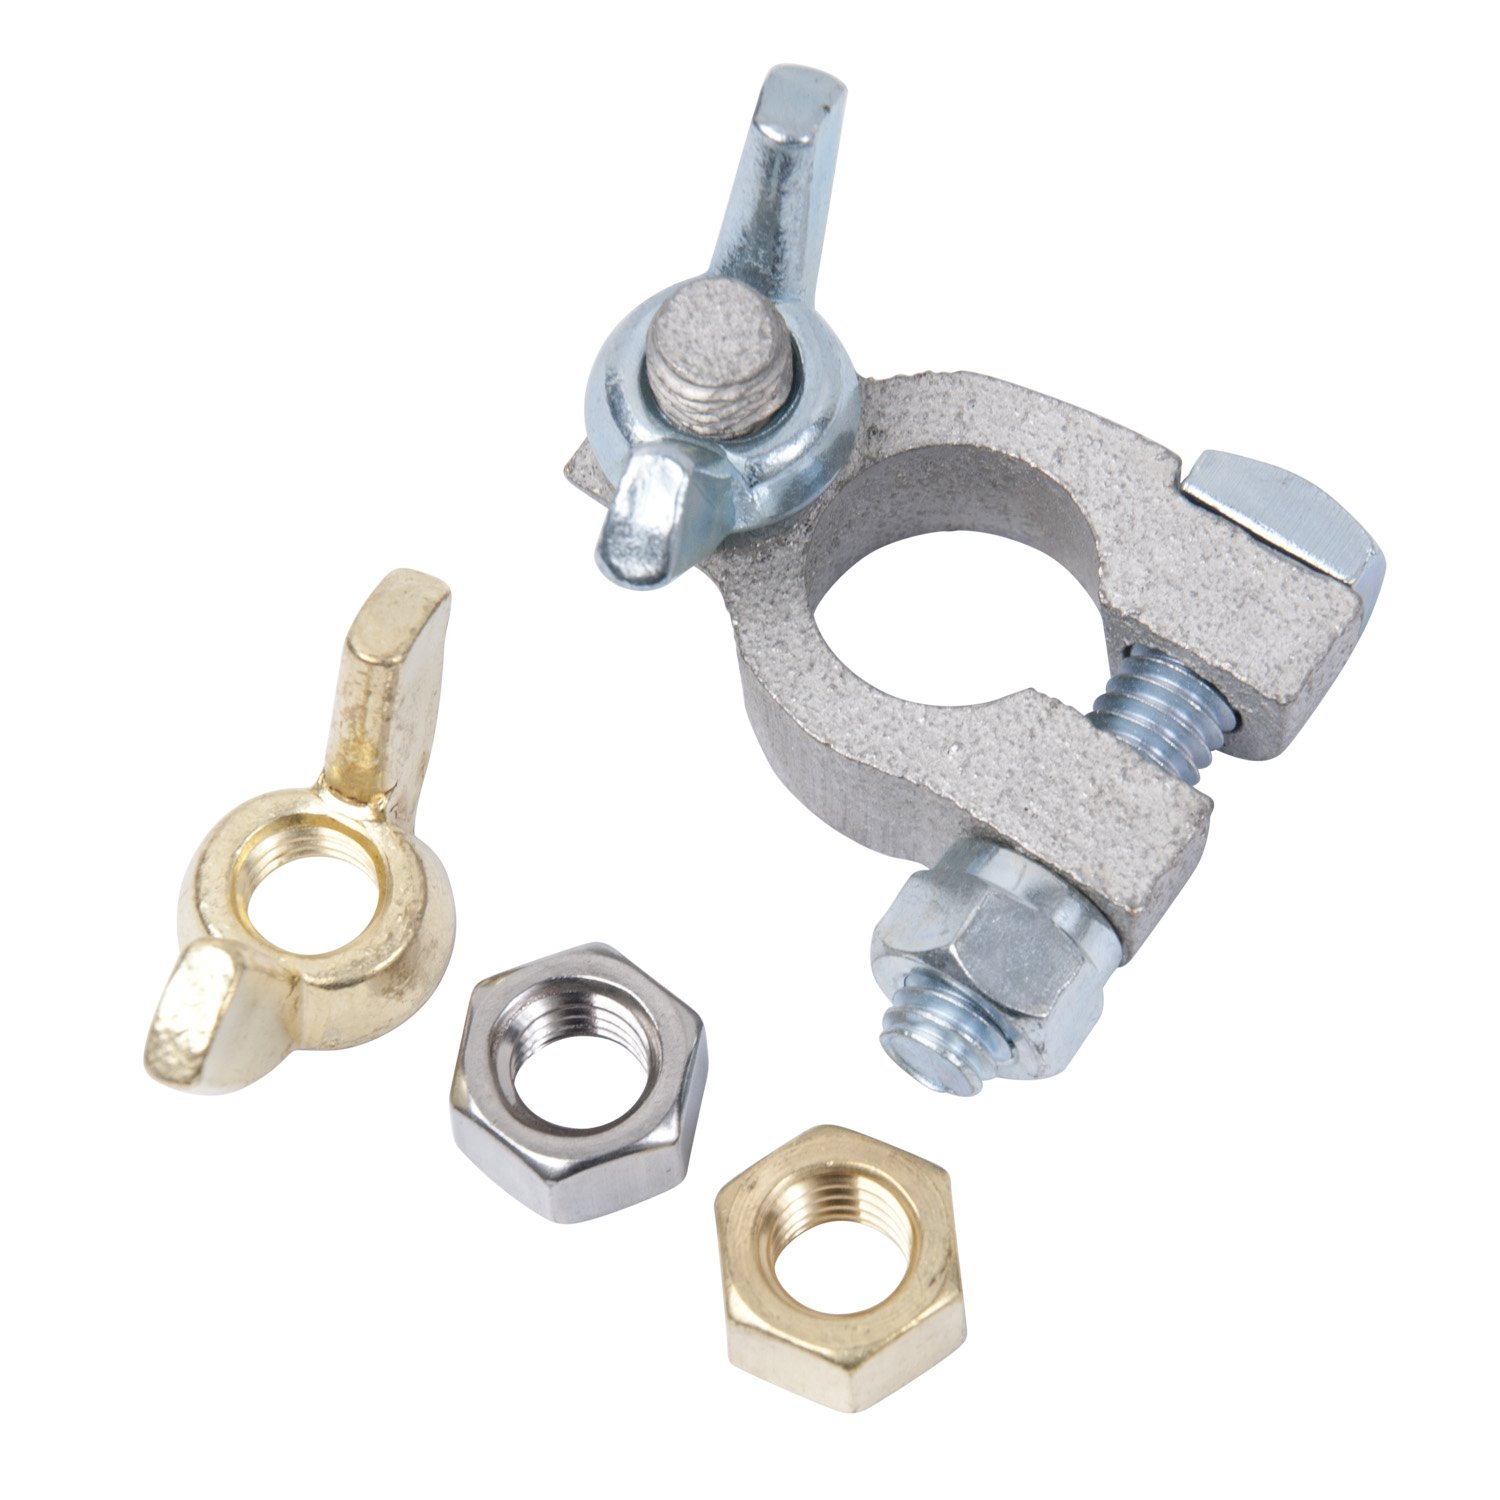 260322 Ancor Marine Grade Electrical Battery Terminal Post Rings 1 each 3//8 and 5//16 Wing Nut 1 each